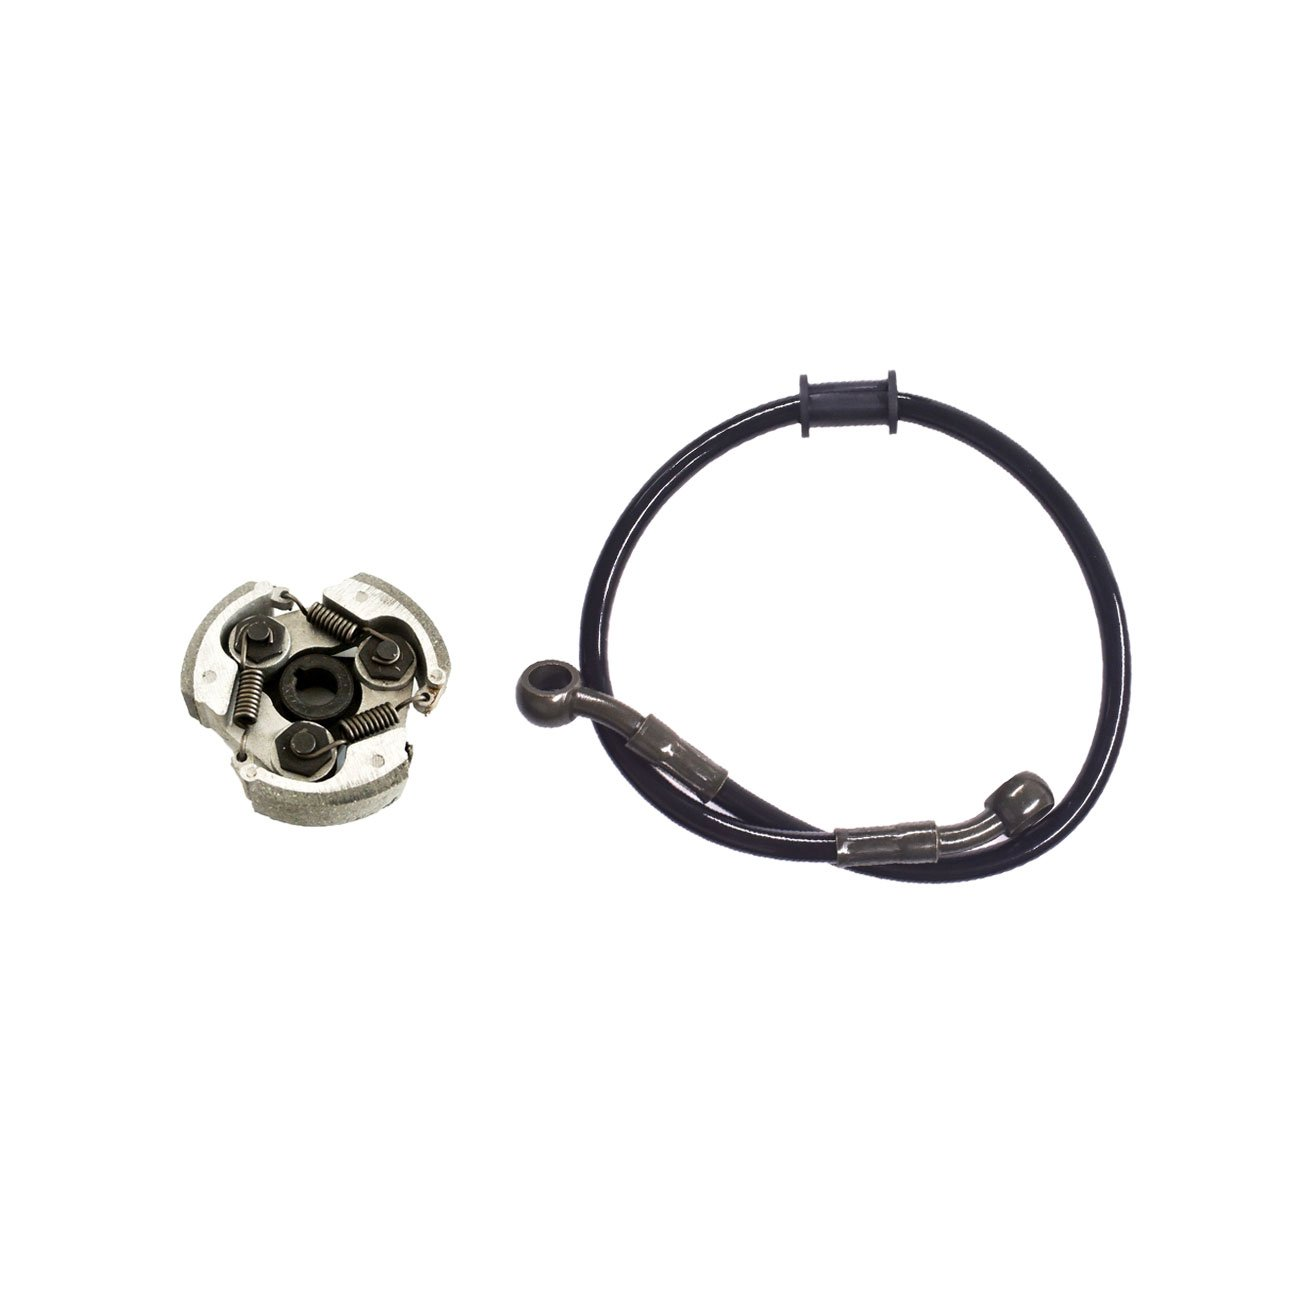 Northtiger 50cm Black Fuel Line And Cluch For Chinese 2 Stroke 43 47 49cc Pocket Dirt Bik